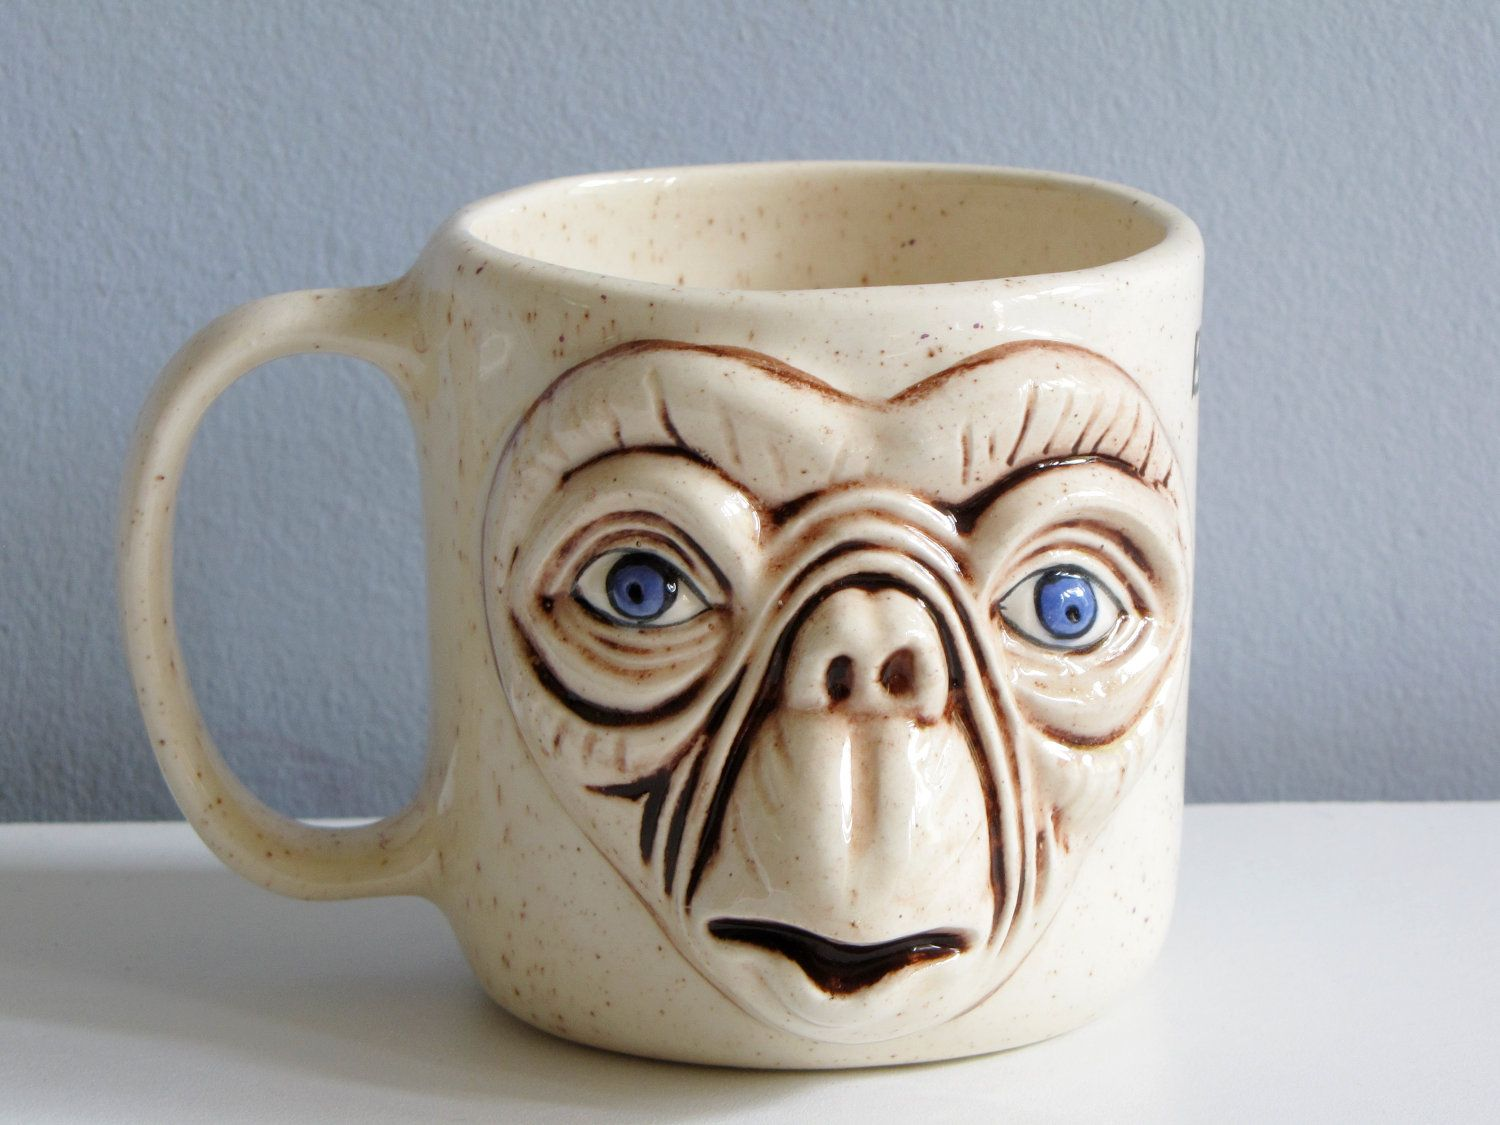 phone home also can you put some coffee in this mug thank you